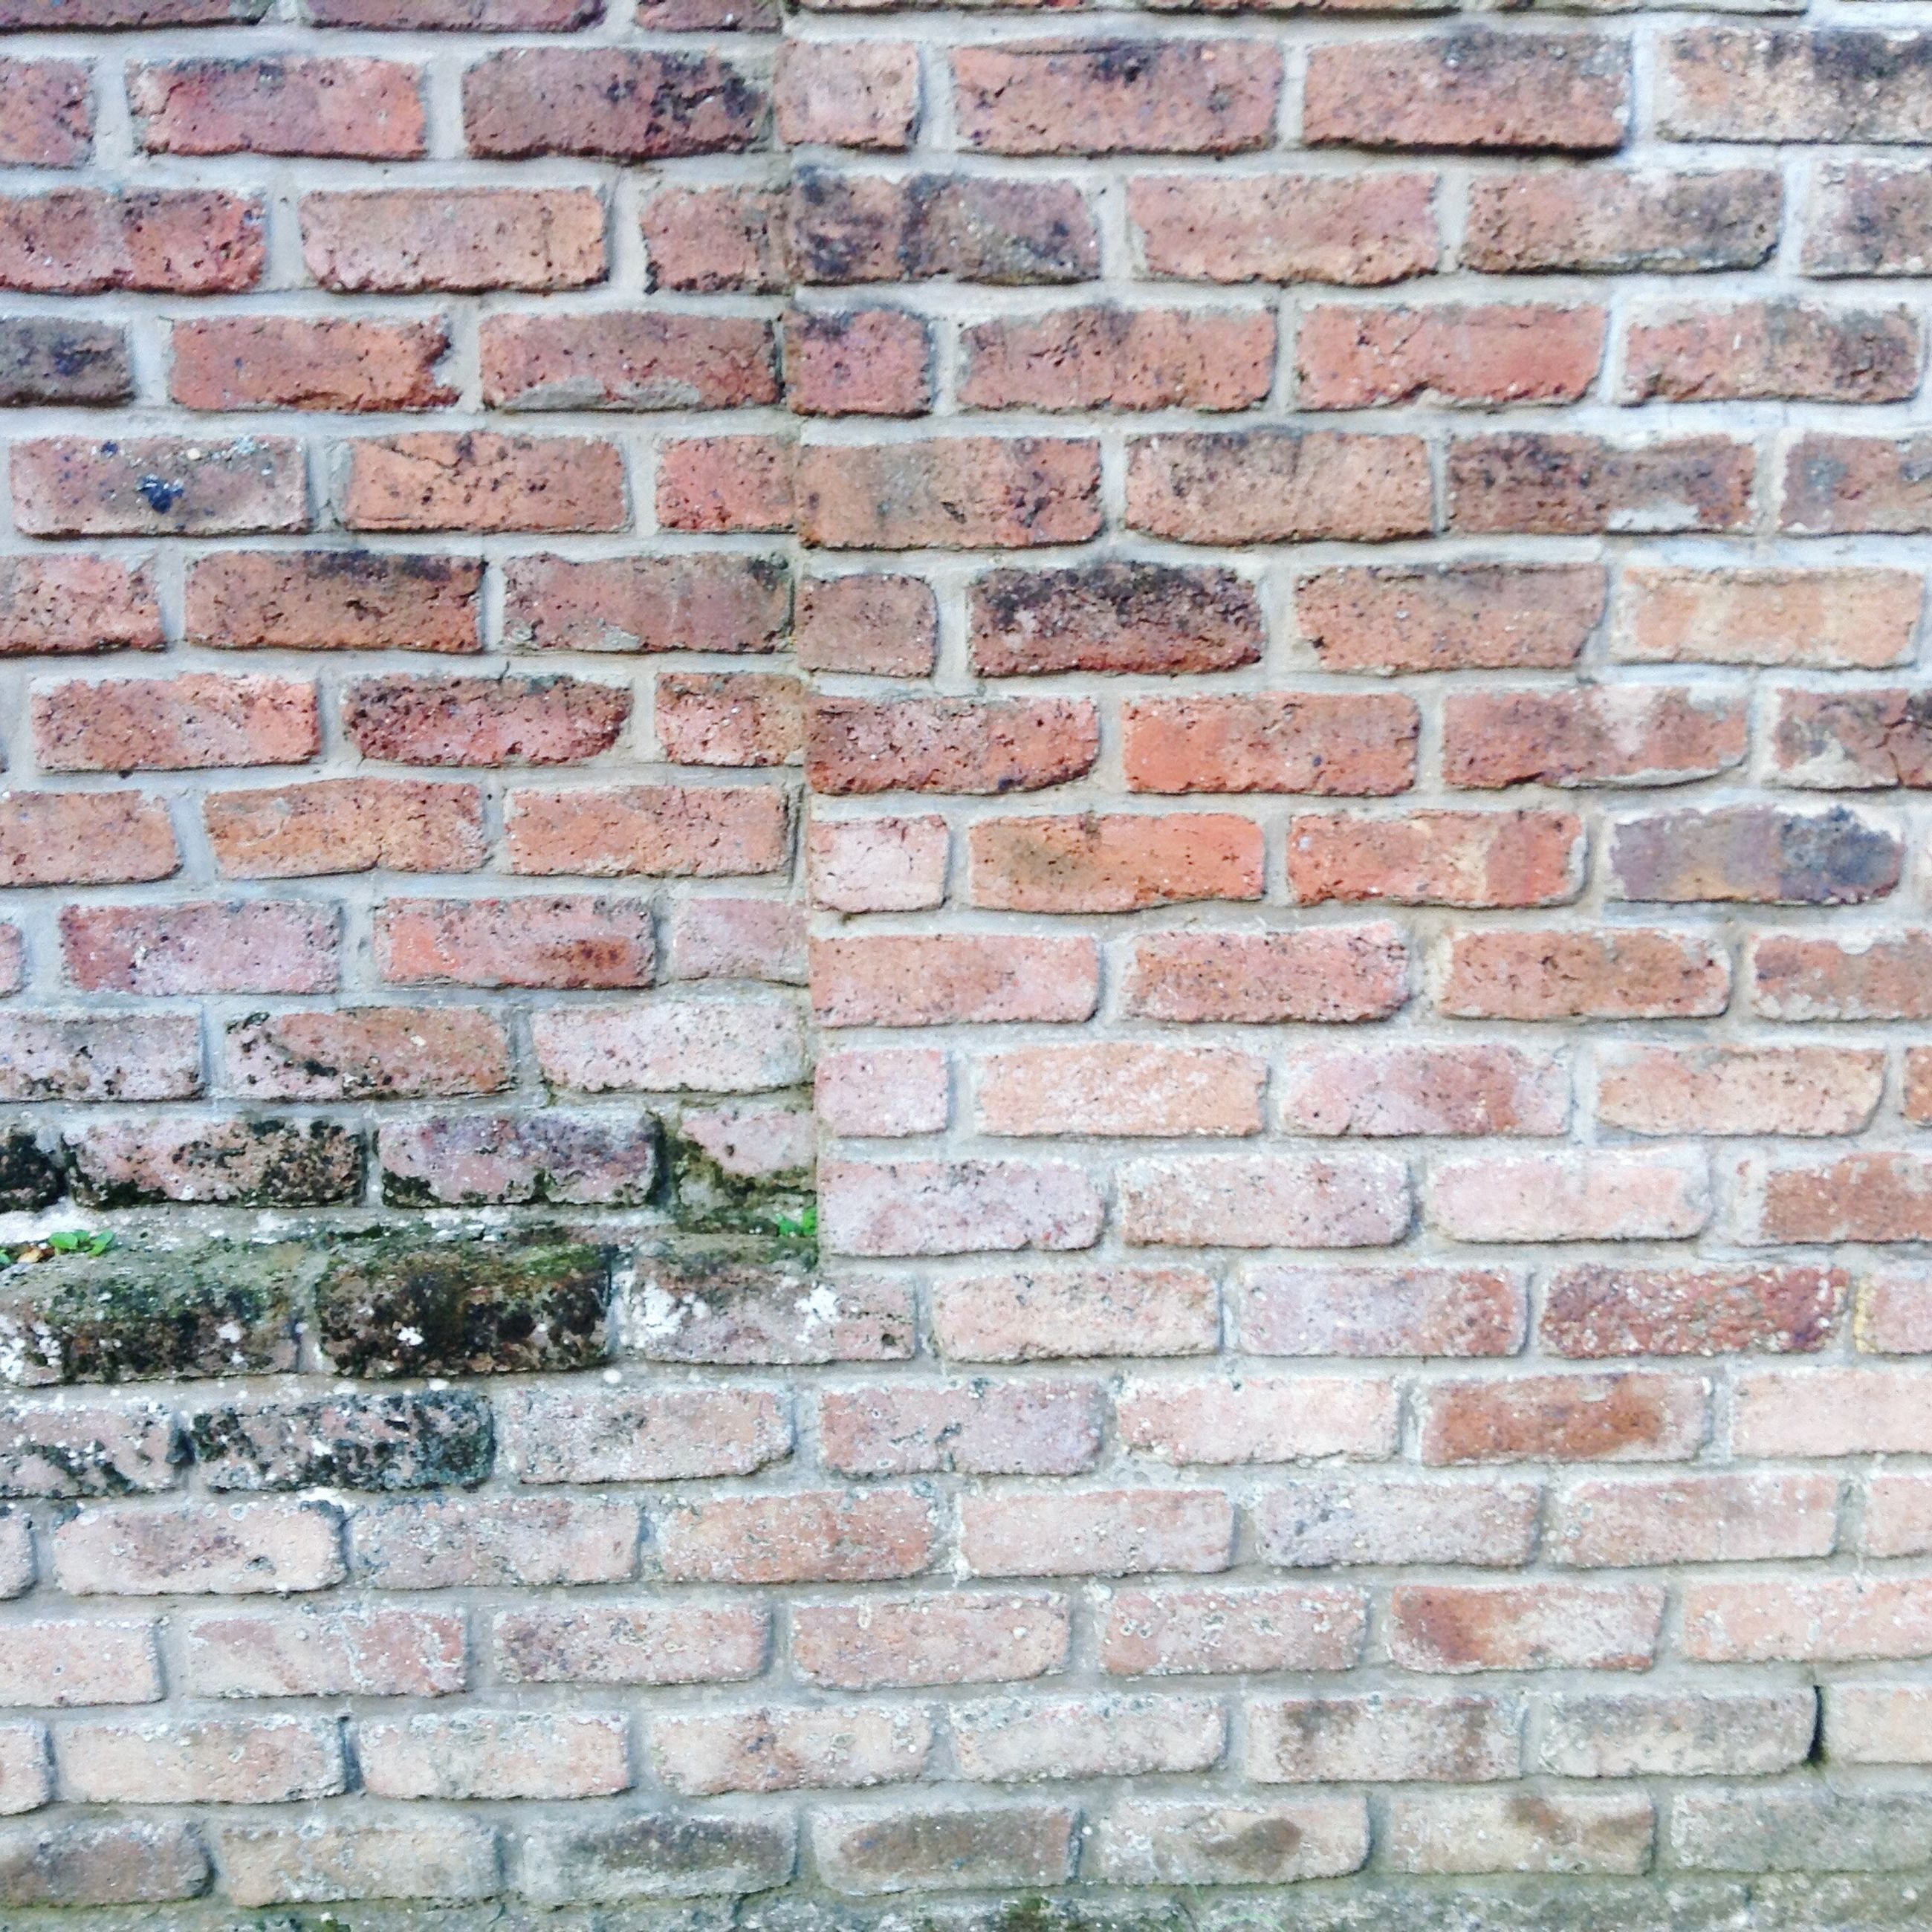 brick wall, wall - building feature, built structure, full frame, building exterior, no people, architecture, backgrounds, outdoors, textured, day, close-up